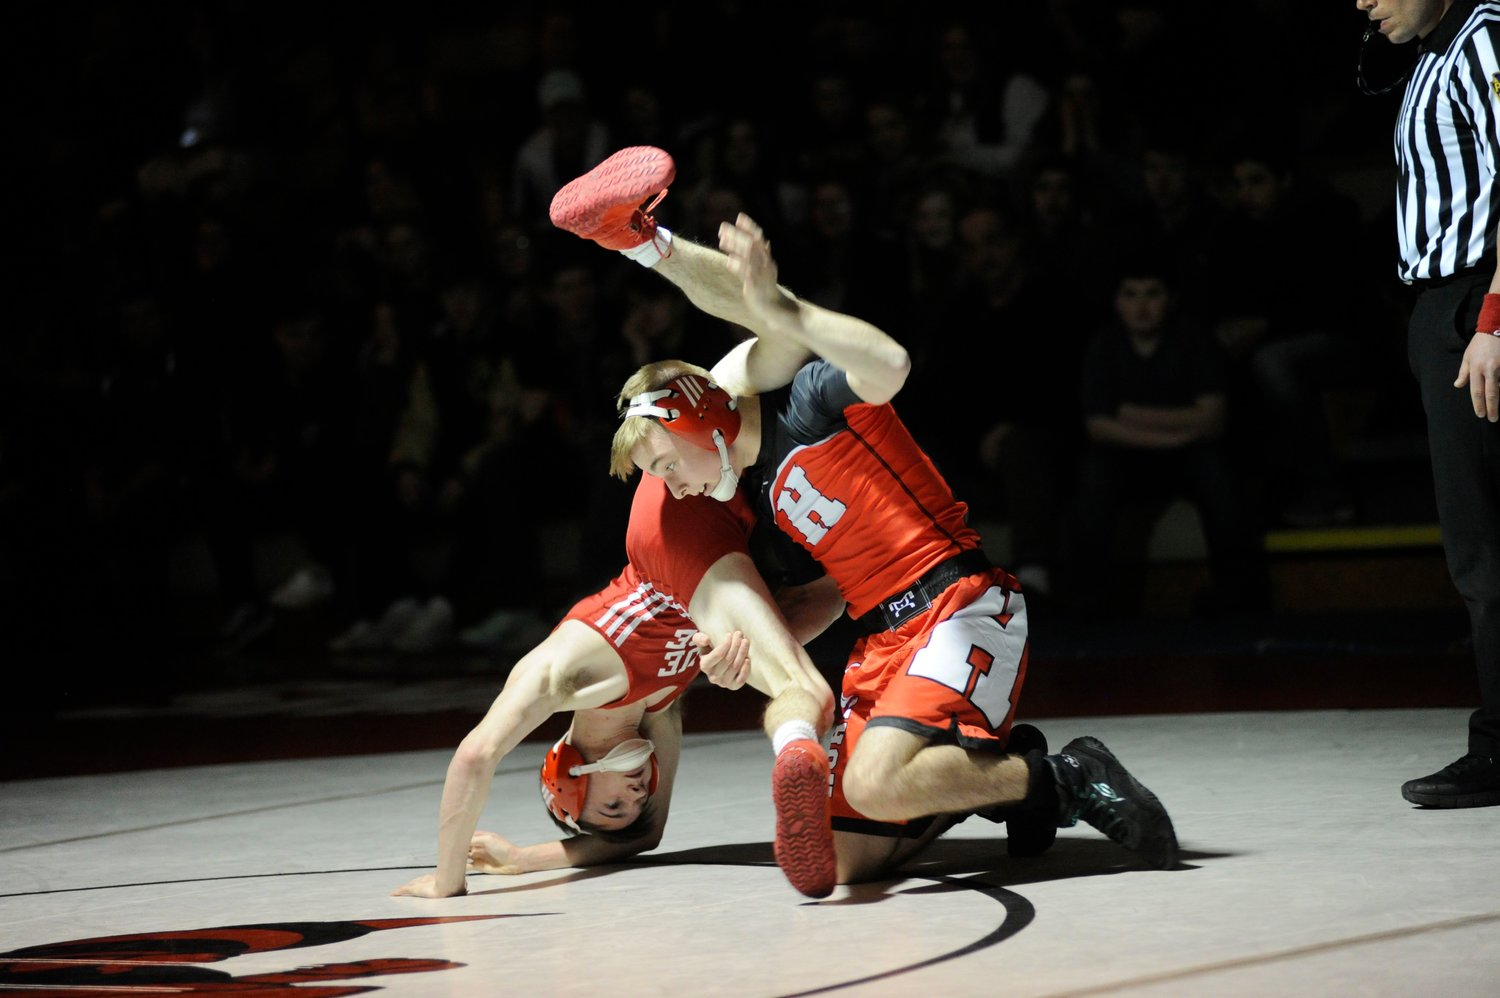 Honesdale's Branden McLaughlin pinned Blue Ridge's Kameron Sheffer at 0:23 in the 120-pound weight class.